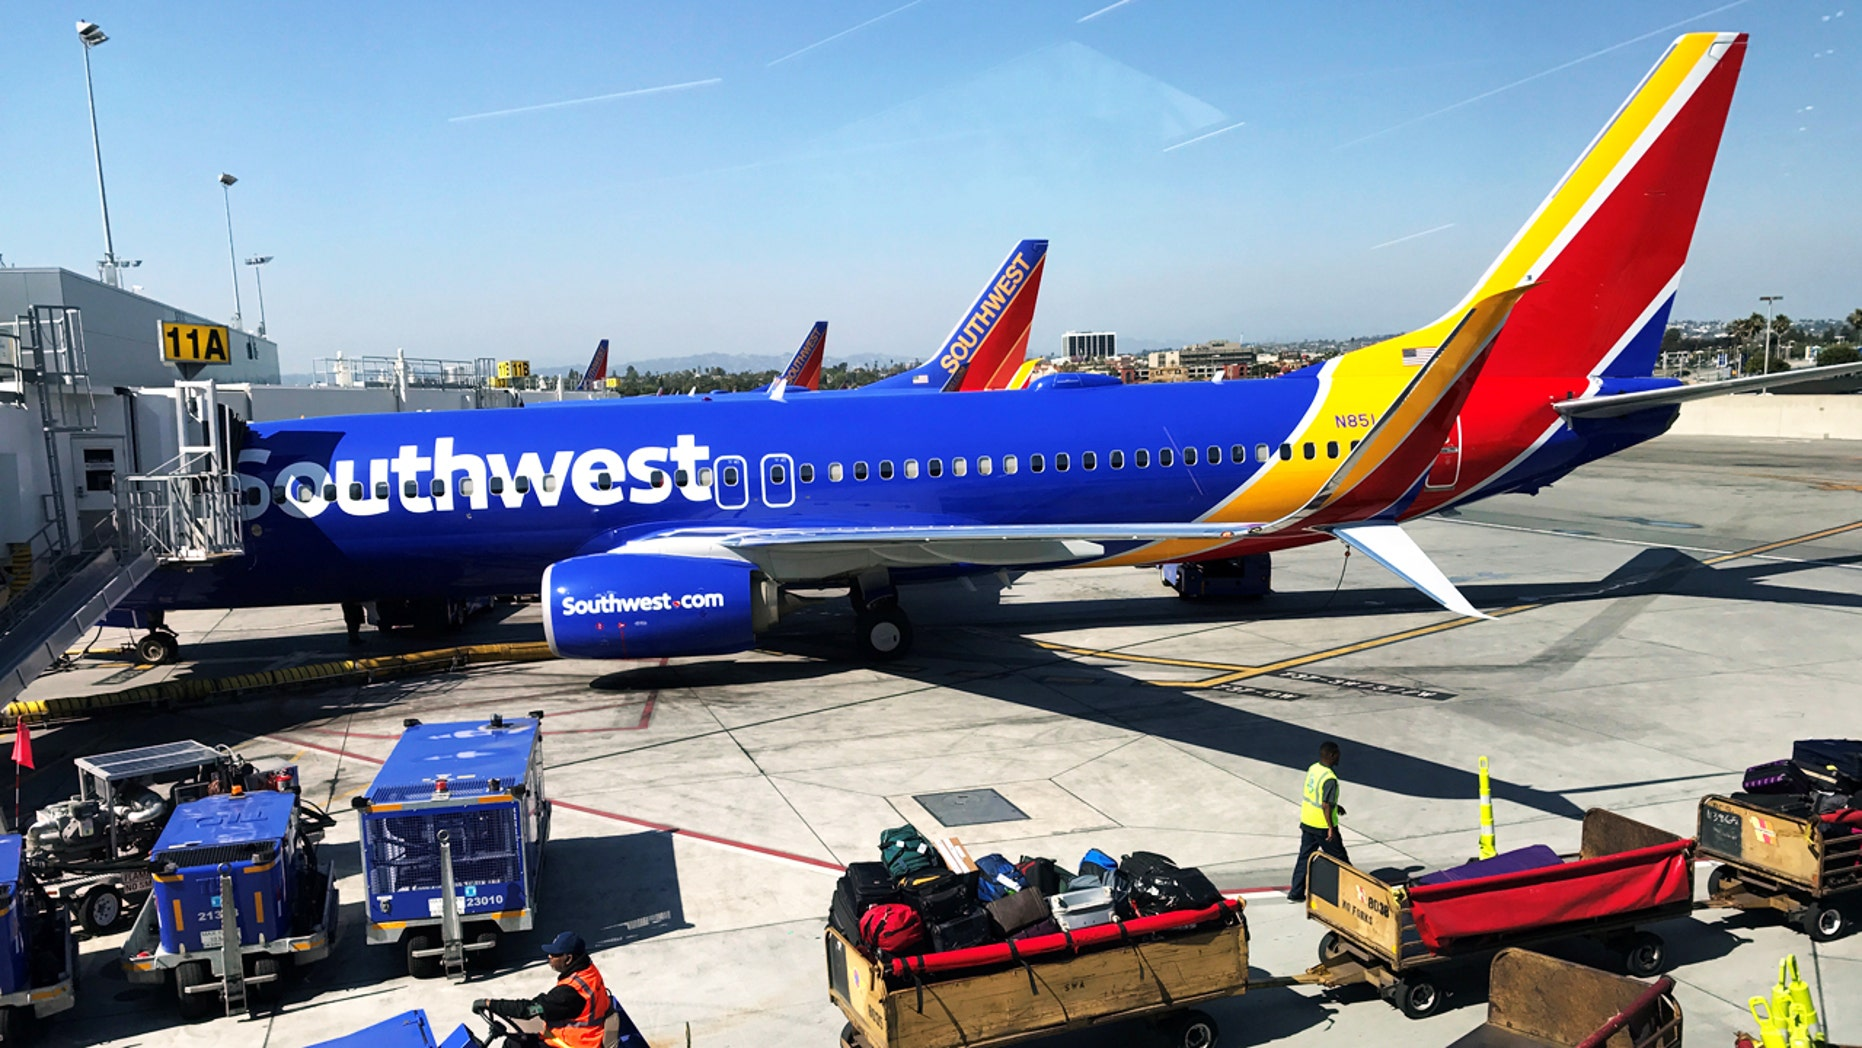 An operations employee at Greater Rochester International Airport has shot to viral fame after a video of him dancing on the tarmac was posted.